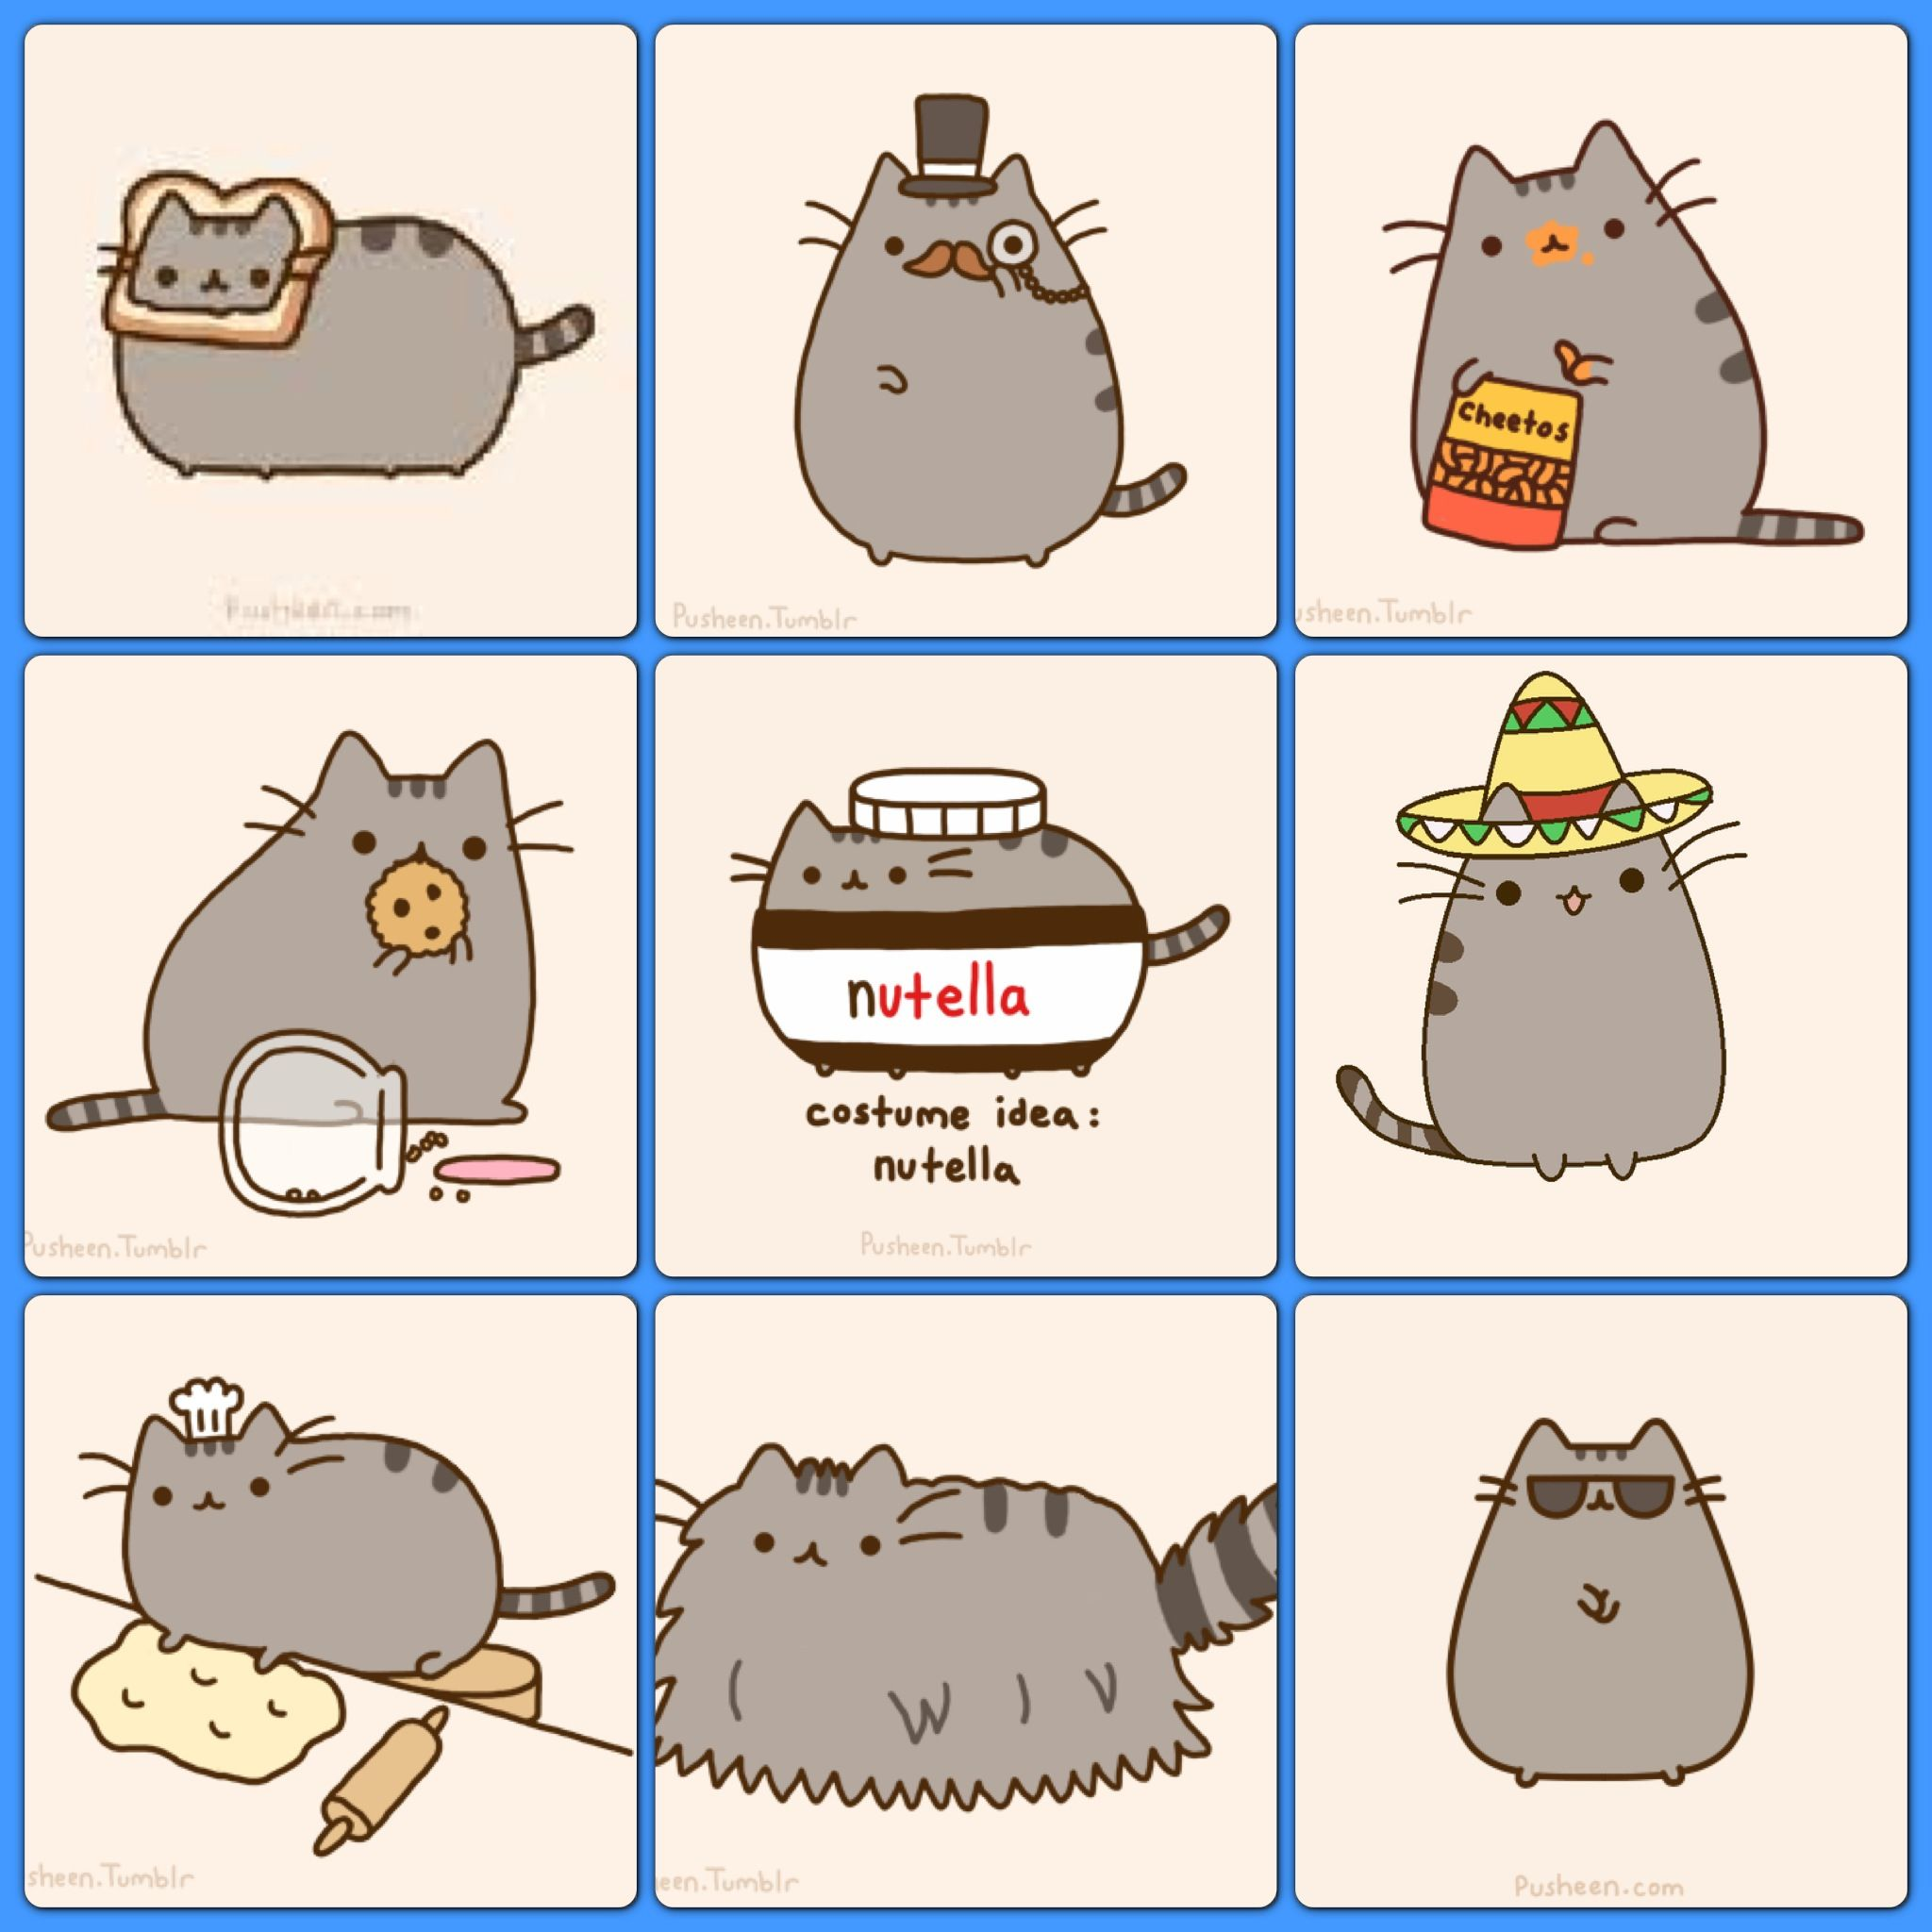 pin by marissa casas on pusheen cat pinterest pusheen pusheen